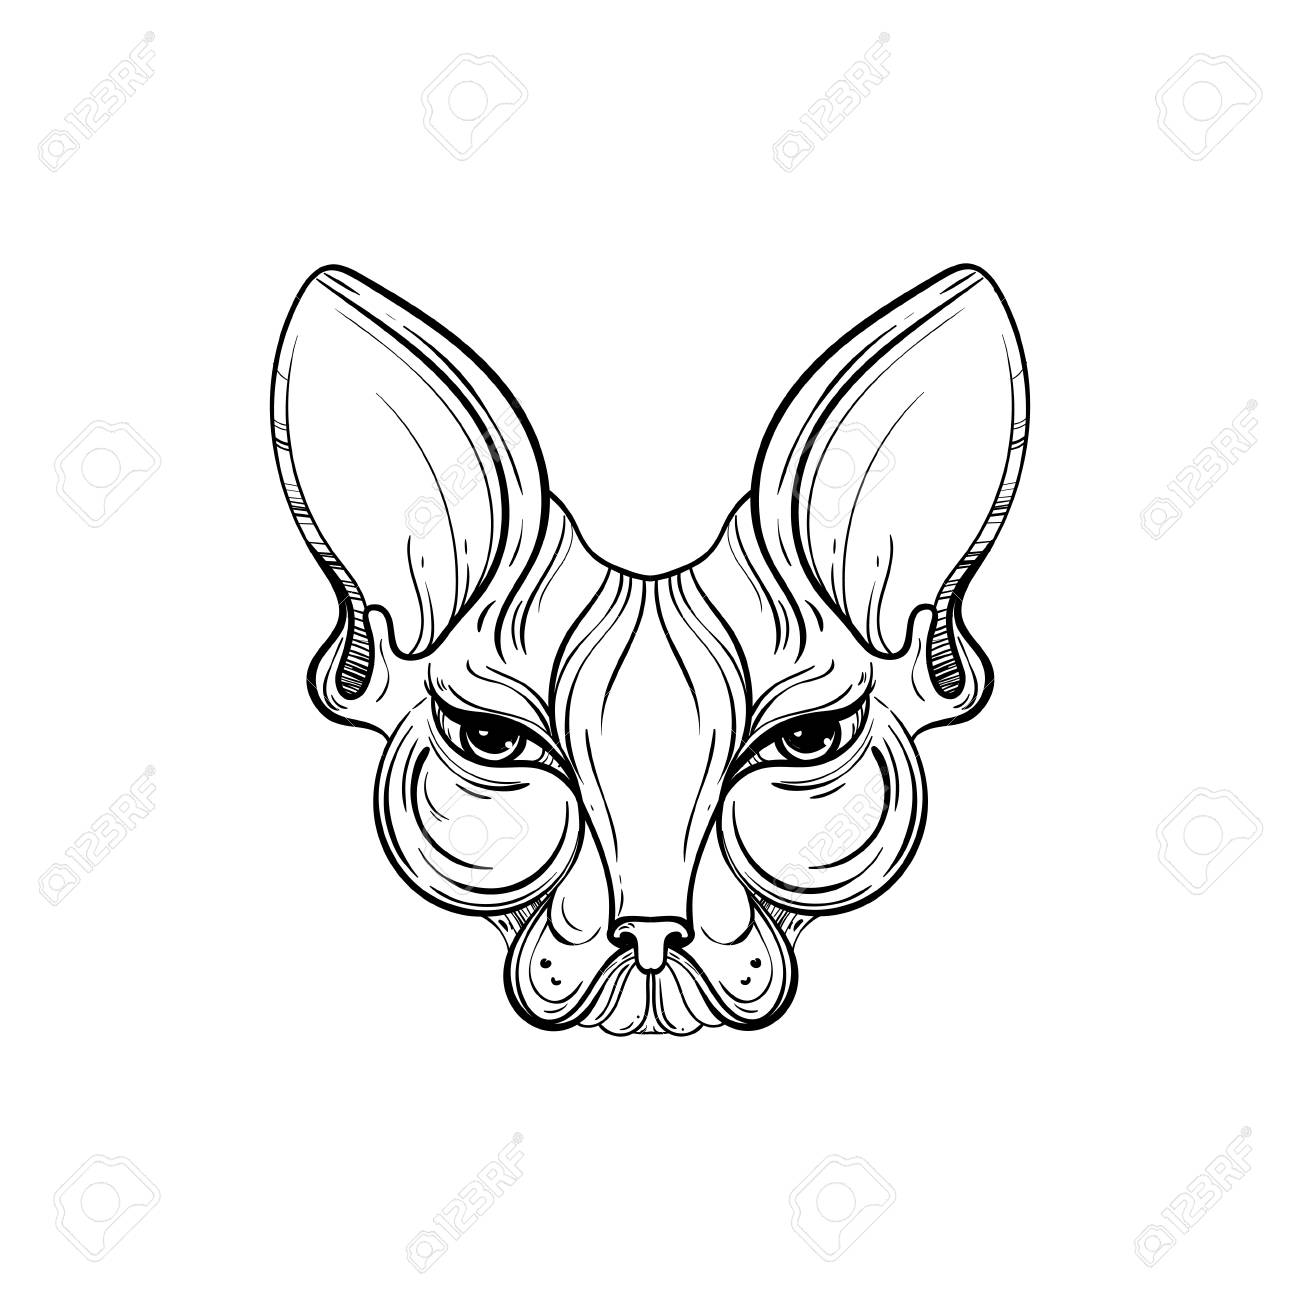 Illustration Vectorielle De Sphynx Chat Visage Modele De Tatouage